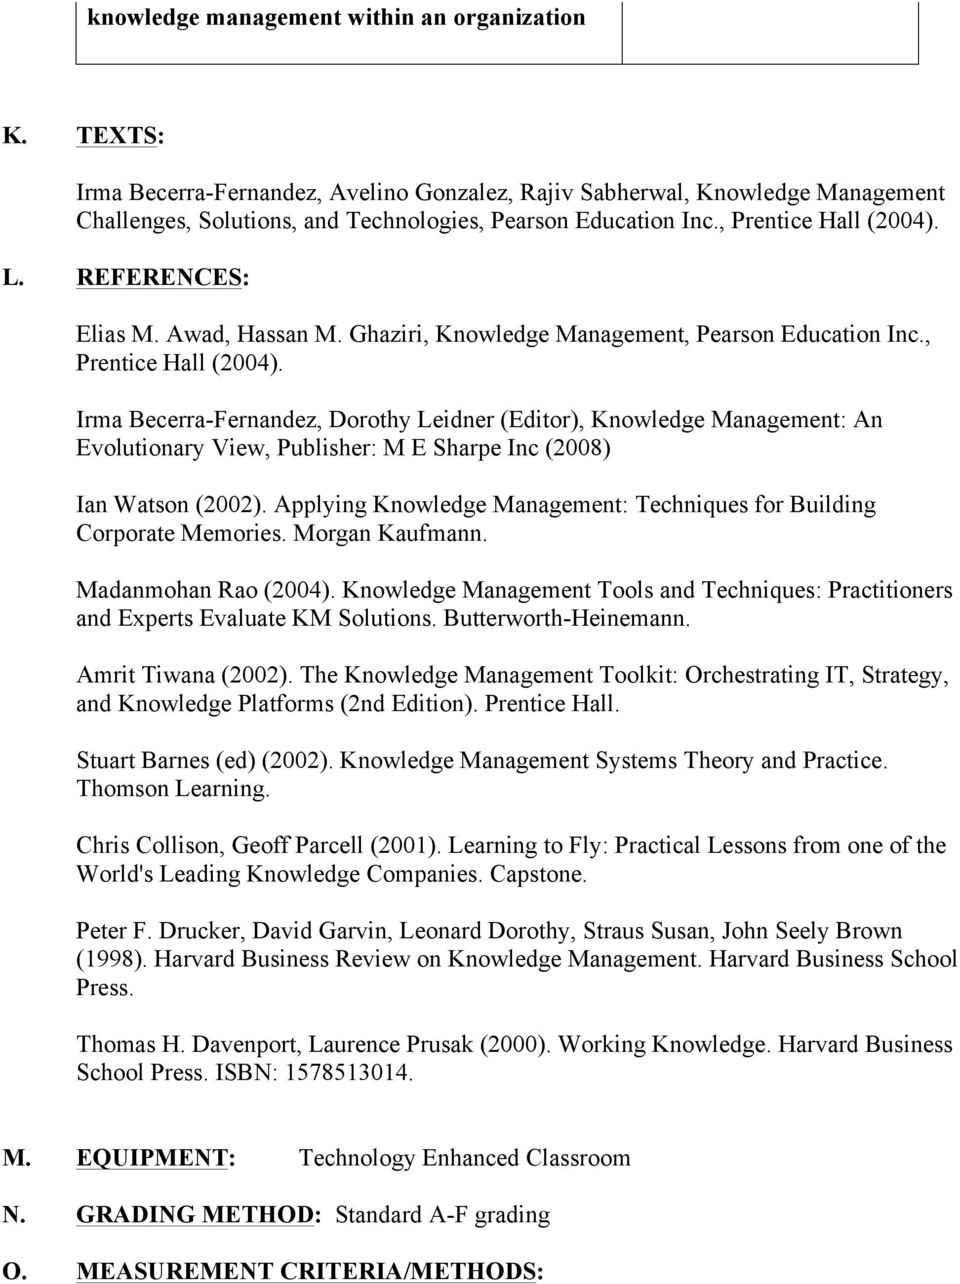 Applying Knowledge Management: Techniques for Building Corporate Memories. Morgan Kaufmann. Madanmohan Rao (2004).